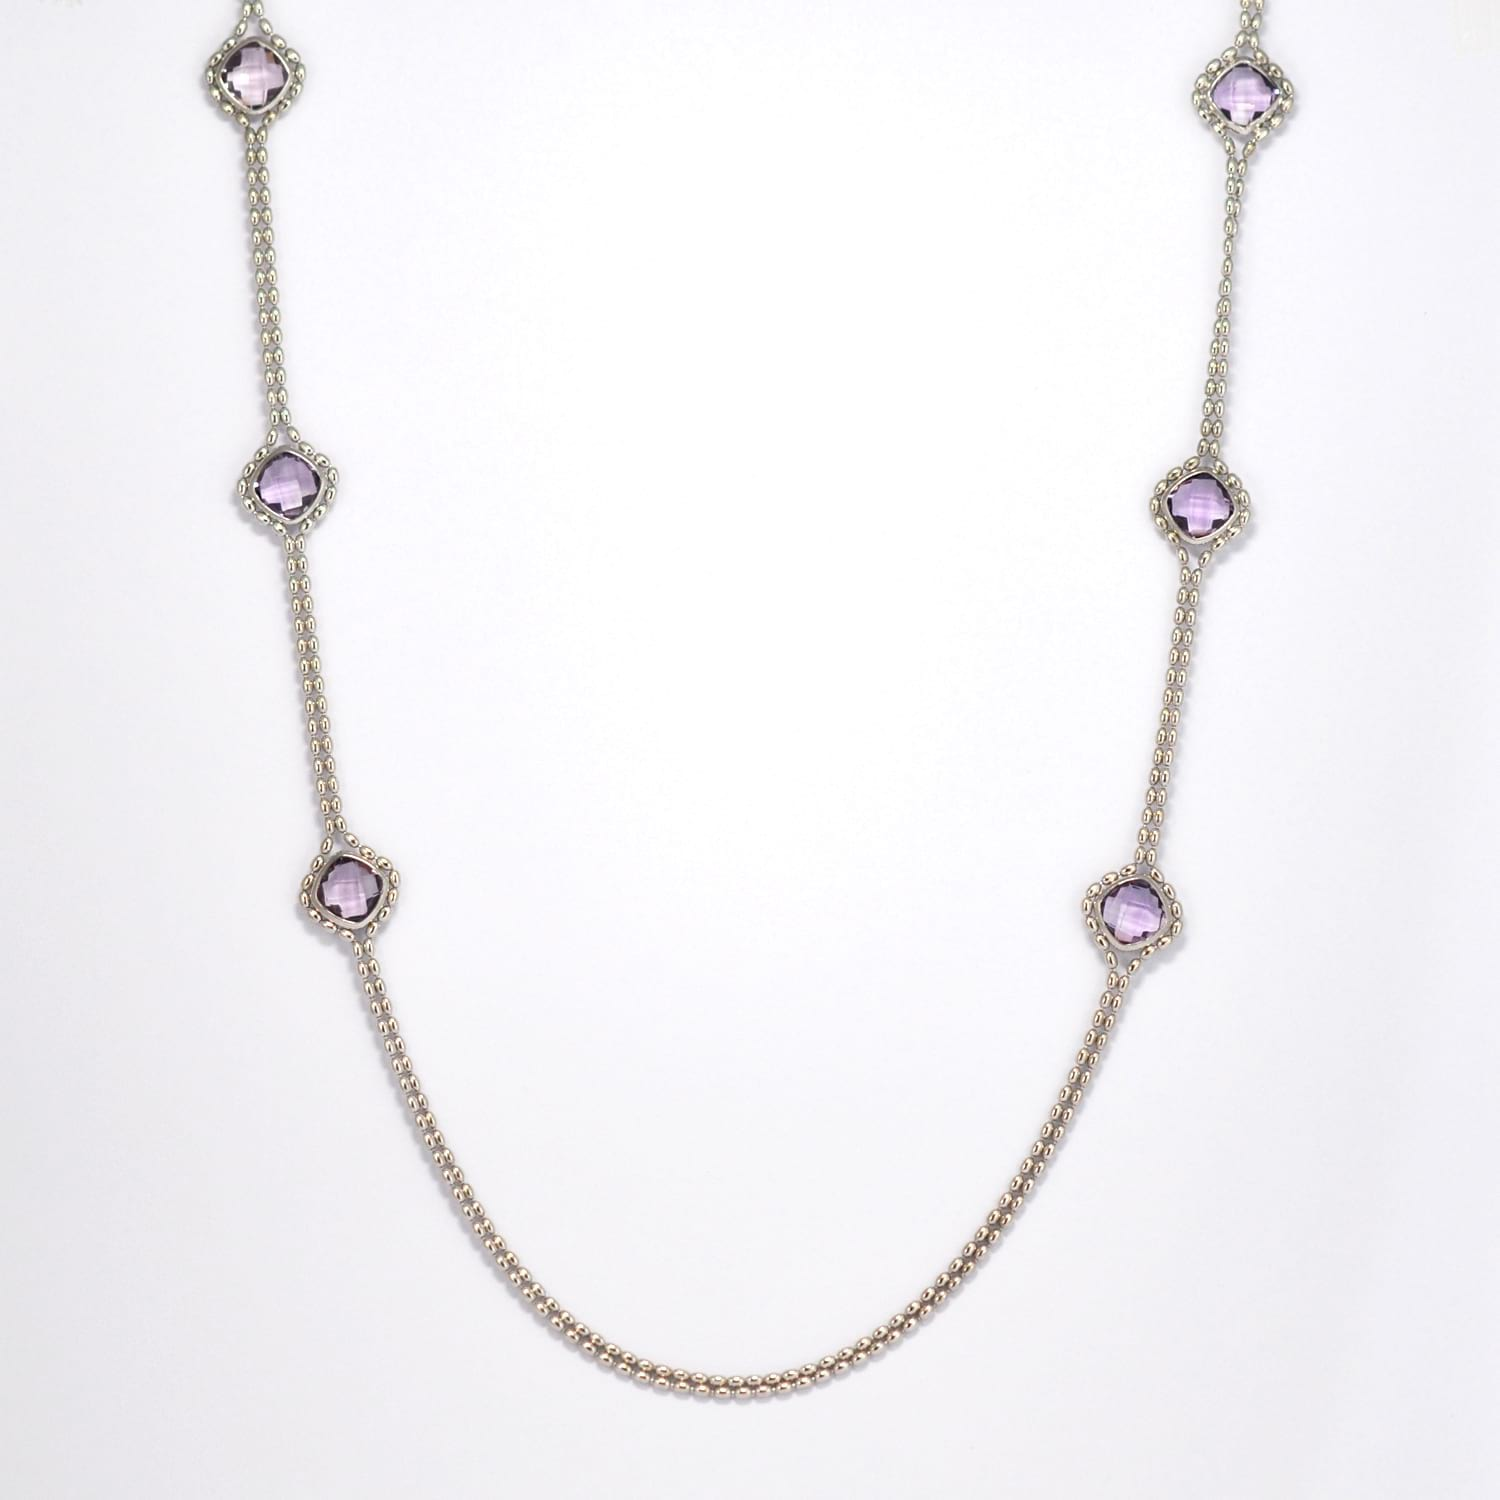 Vibrant Amethyst & Silver Necklace